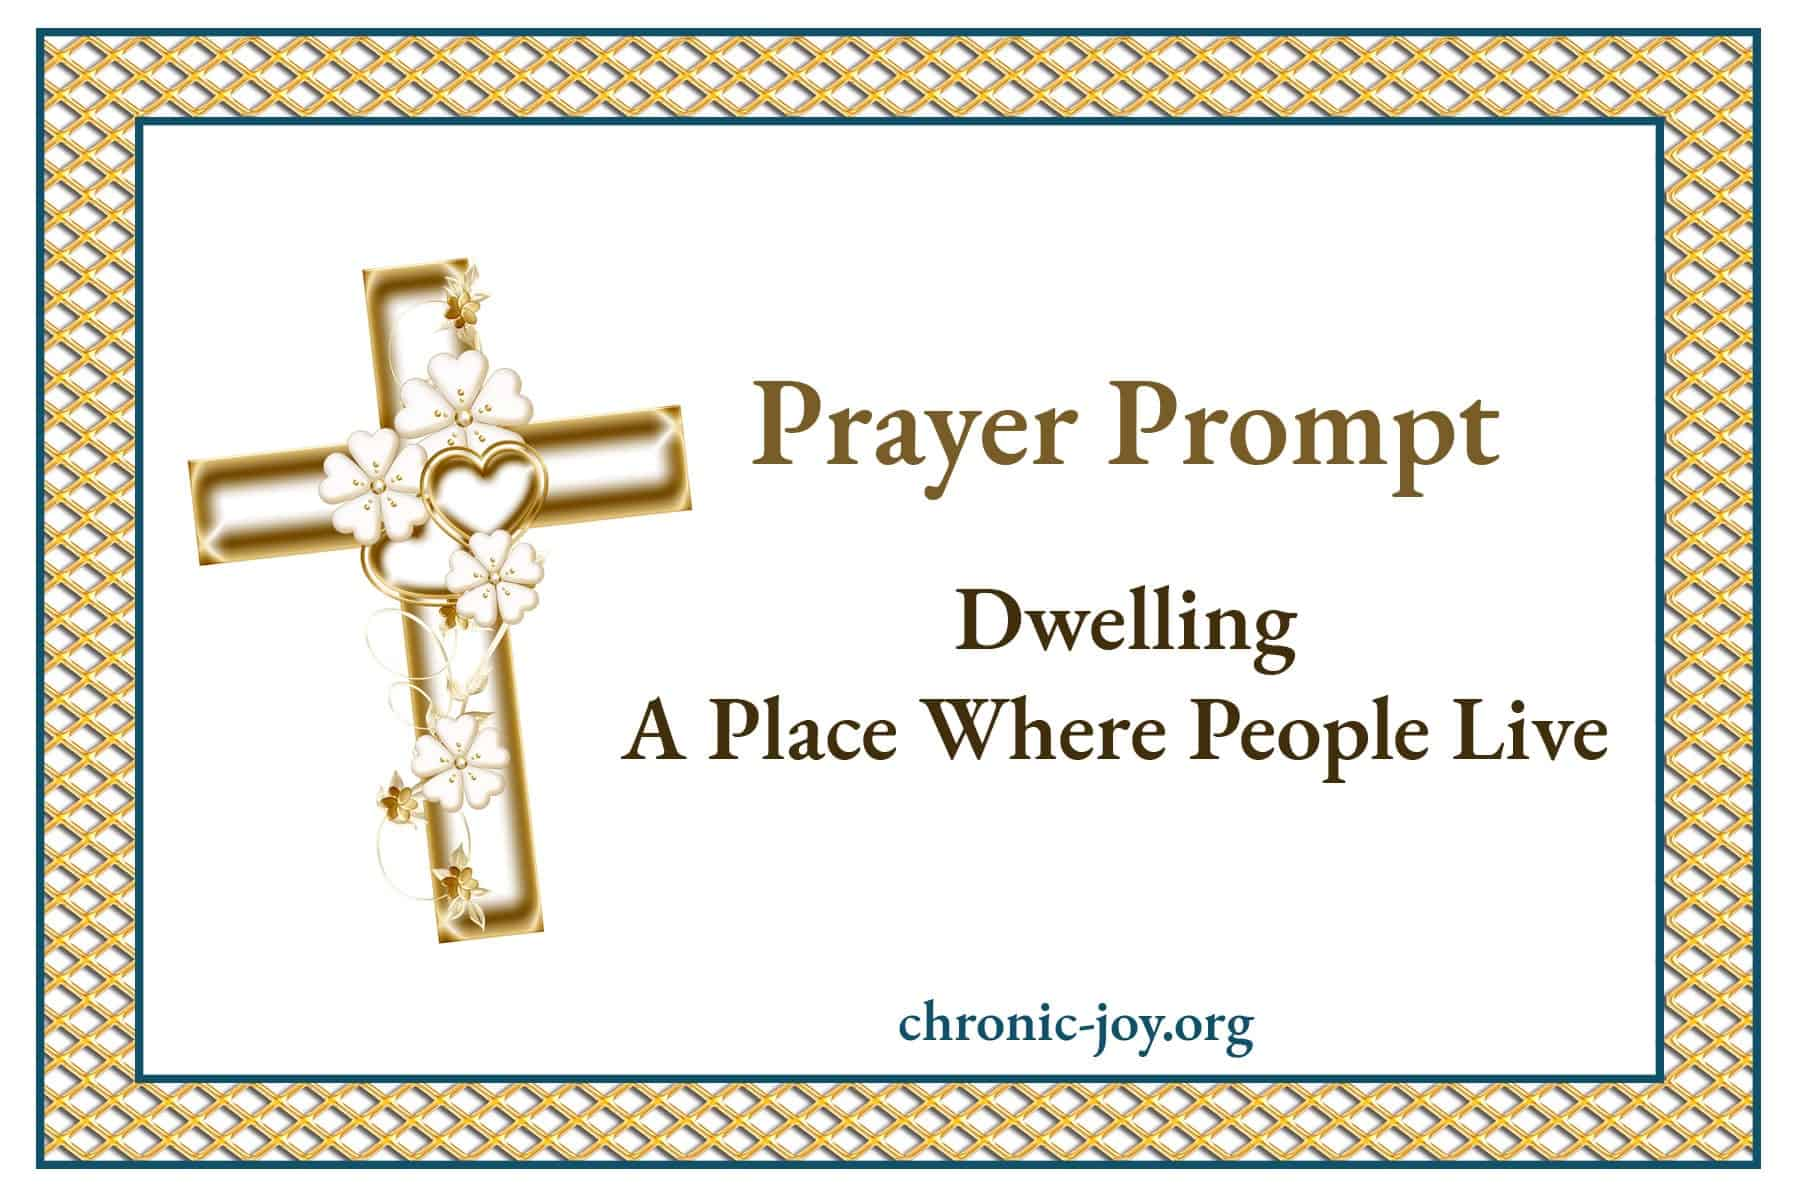 Dwelling • A Place Where People Live • Devotional